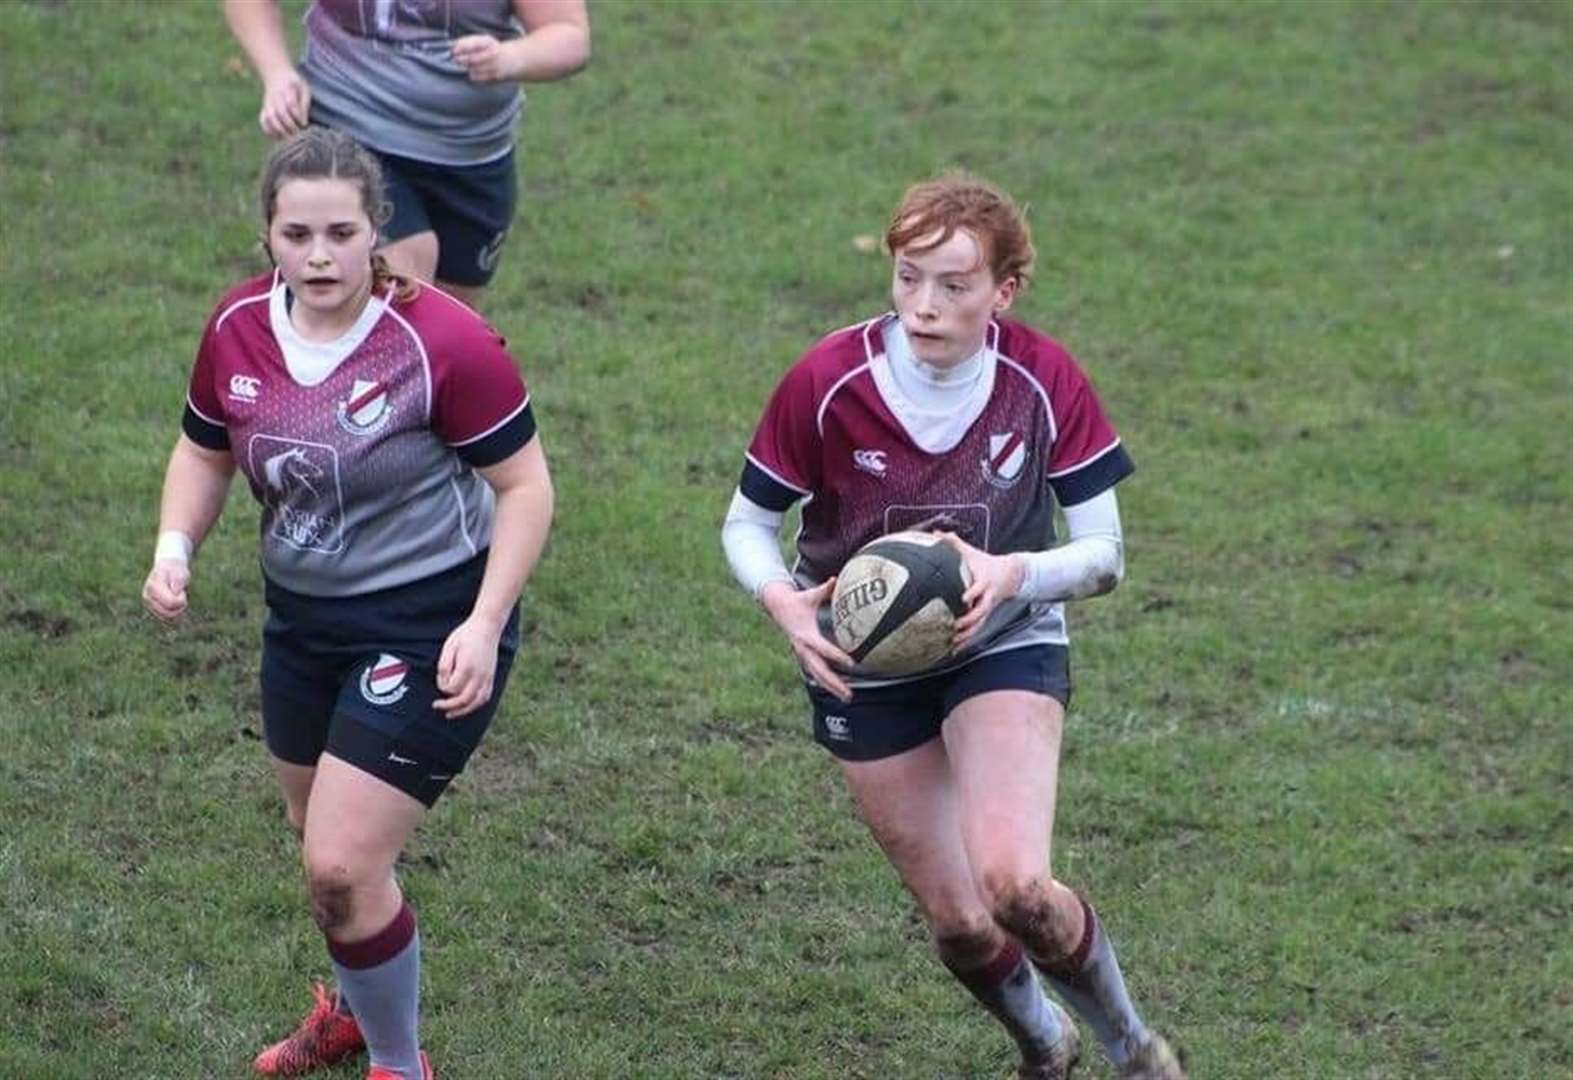 Becky claims a hat-trick of tries as ladies record first victory